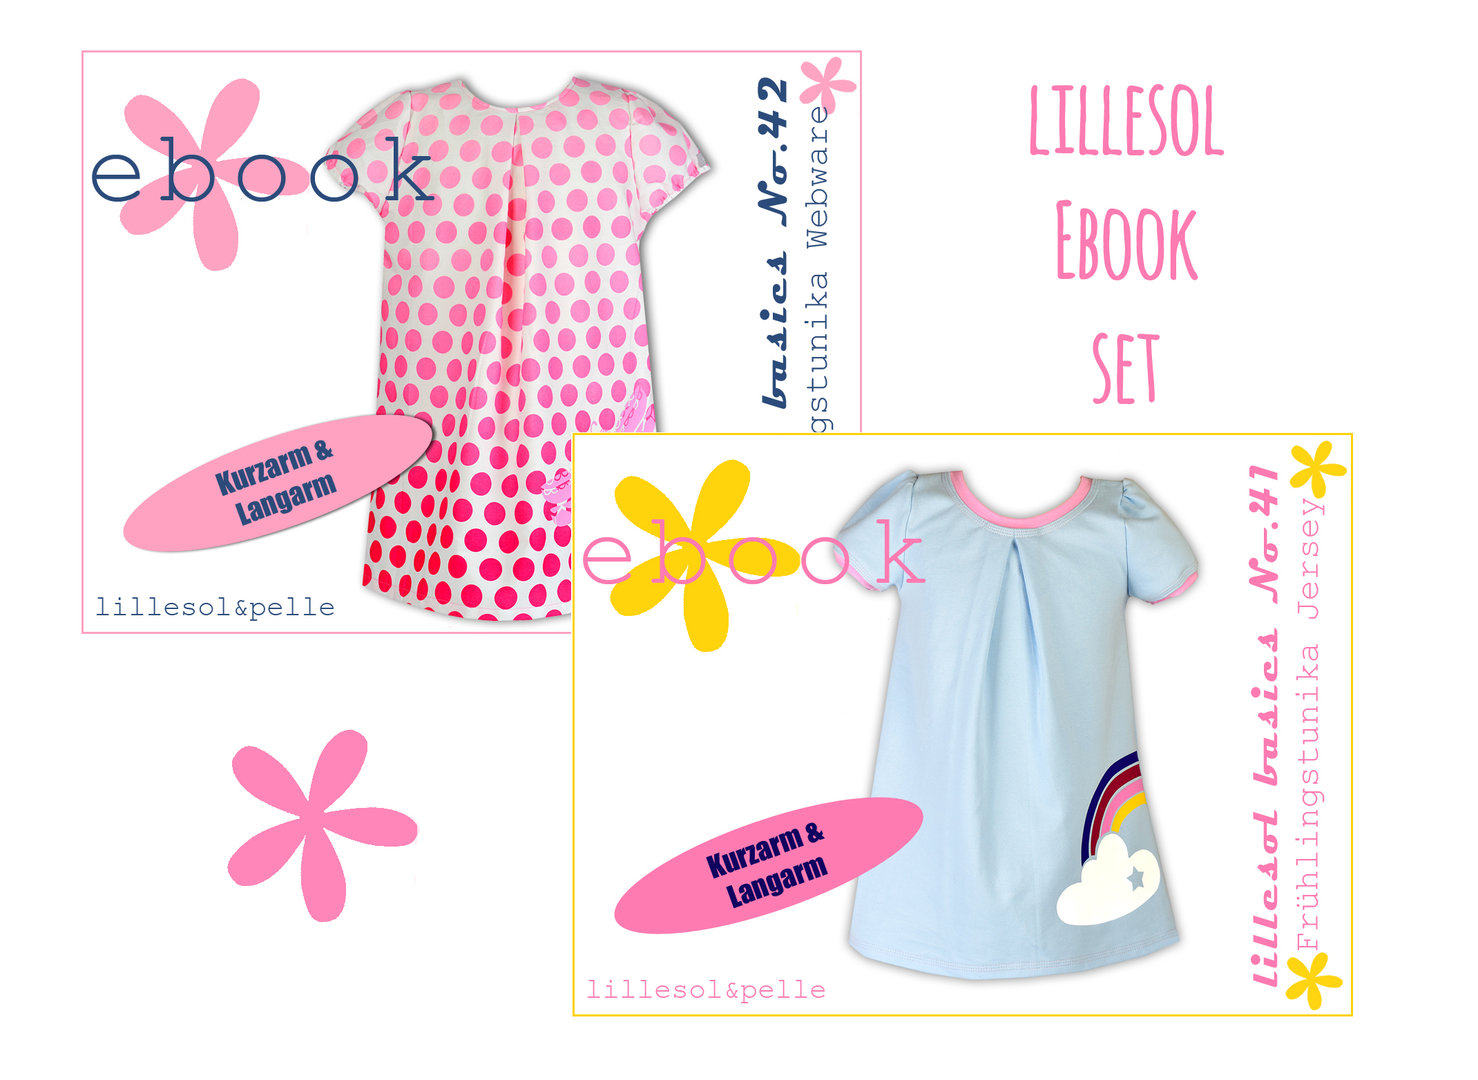 lillesol ebook set basics No.41 und No.42